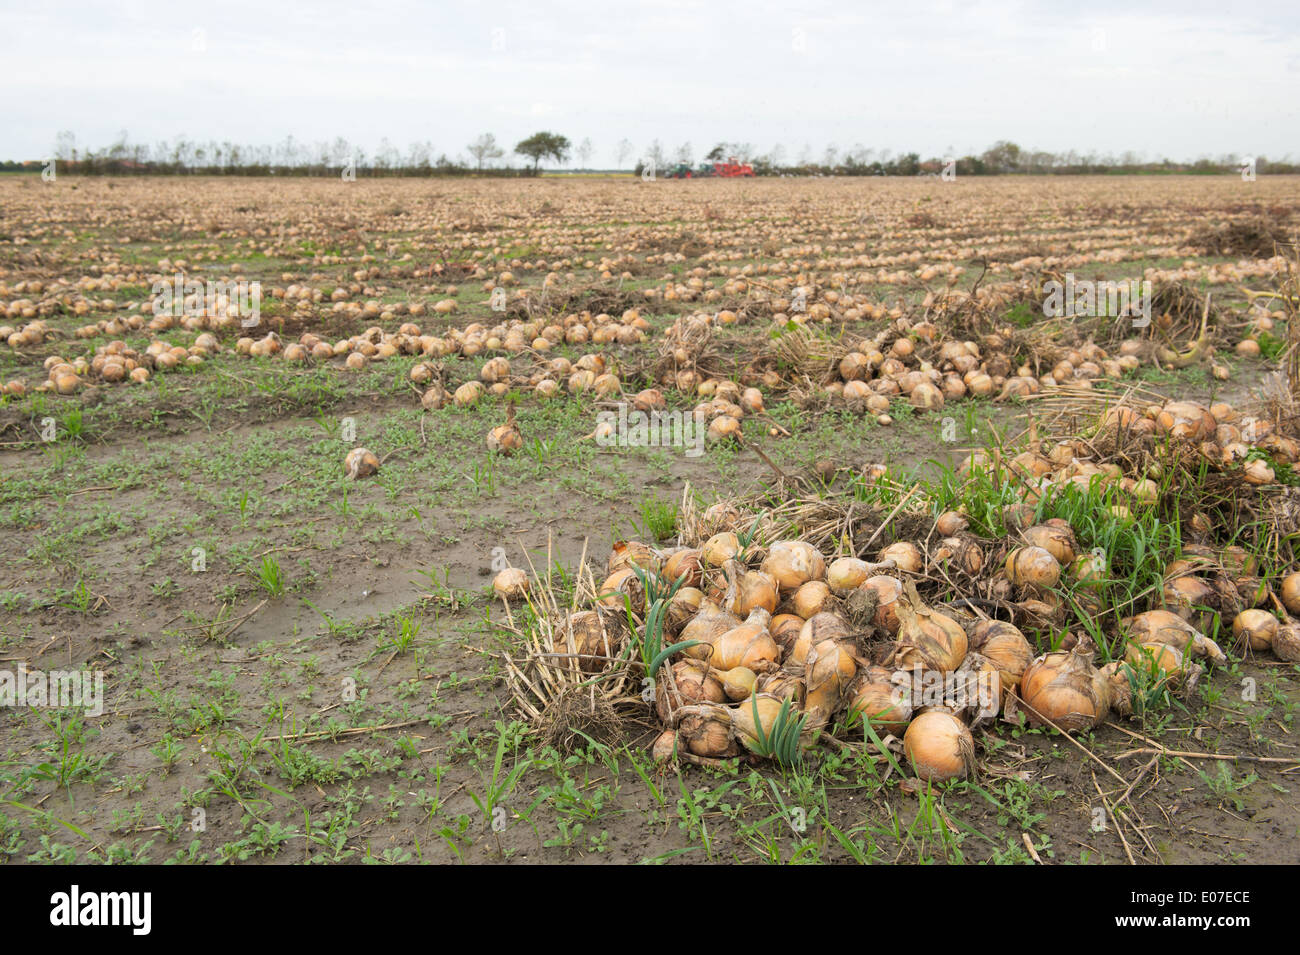 Harvest of onions in the agriculture fields of Dutch sealand - Stock Image